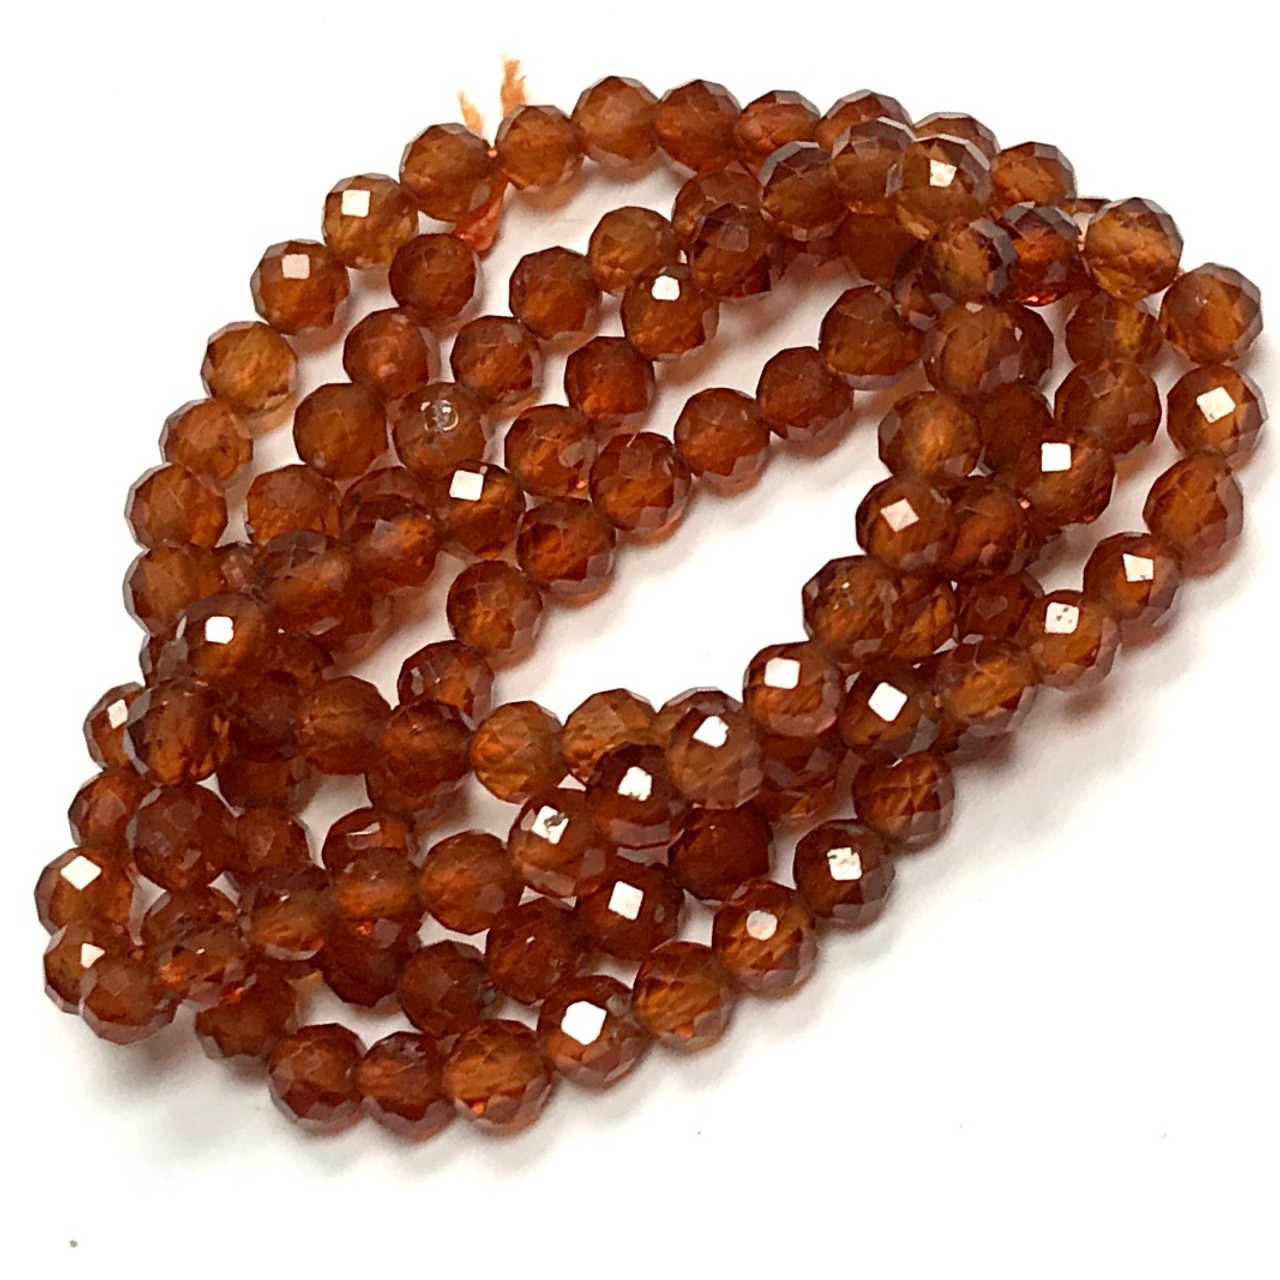 SKU#19758 Total 2 Strands of 14 Inches Full Hank of 5.5-12.5mm Hessonite Garnet Carved Melon Natural Gemstone Beads CLOSEOUT SALE